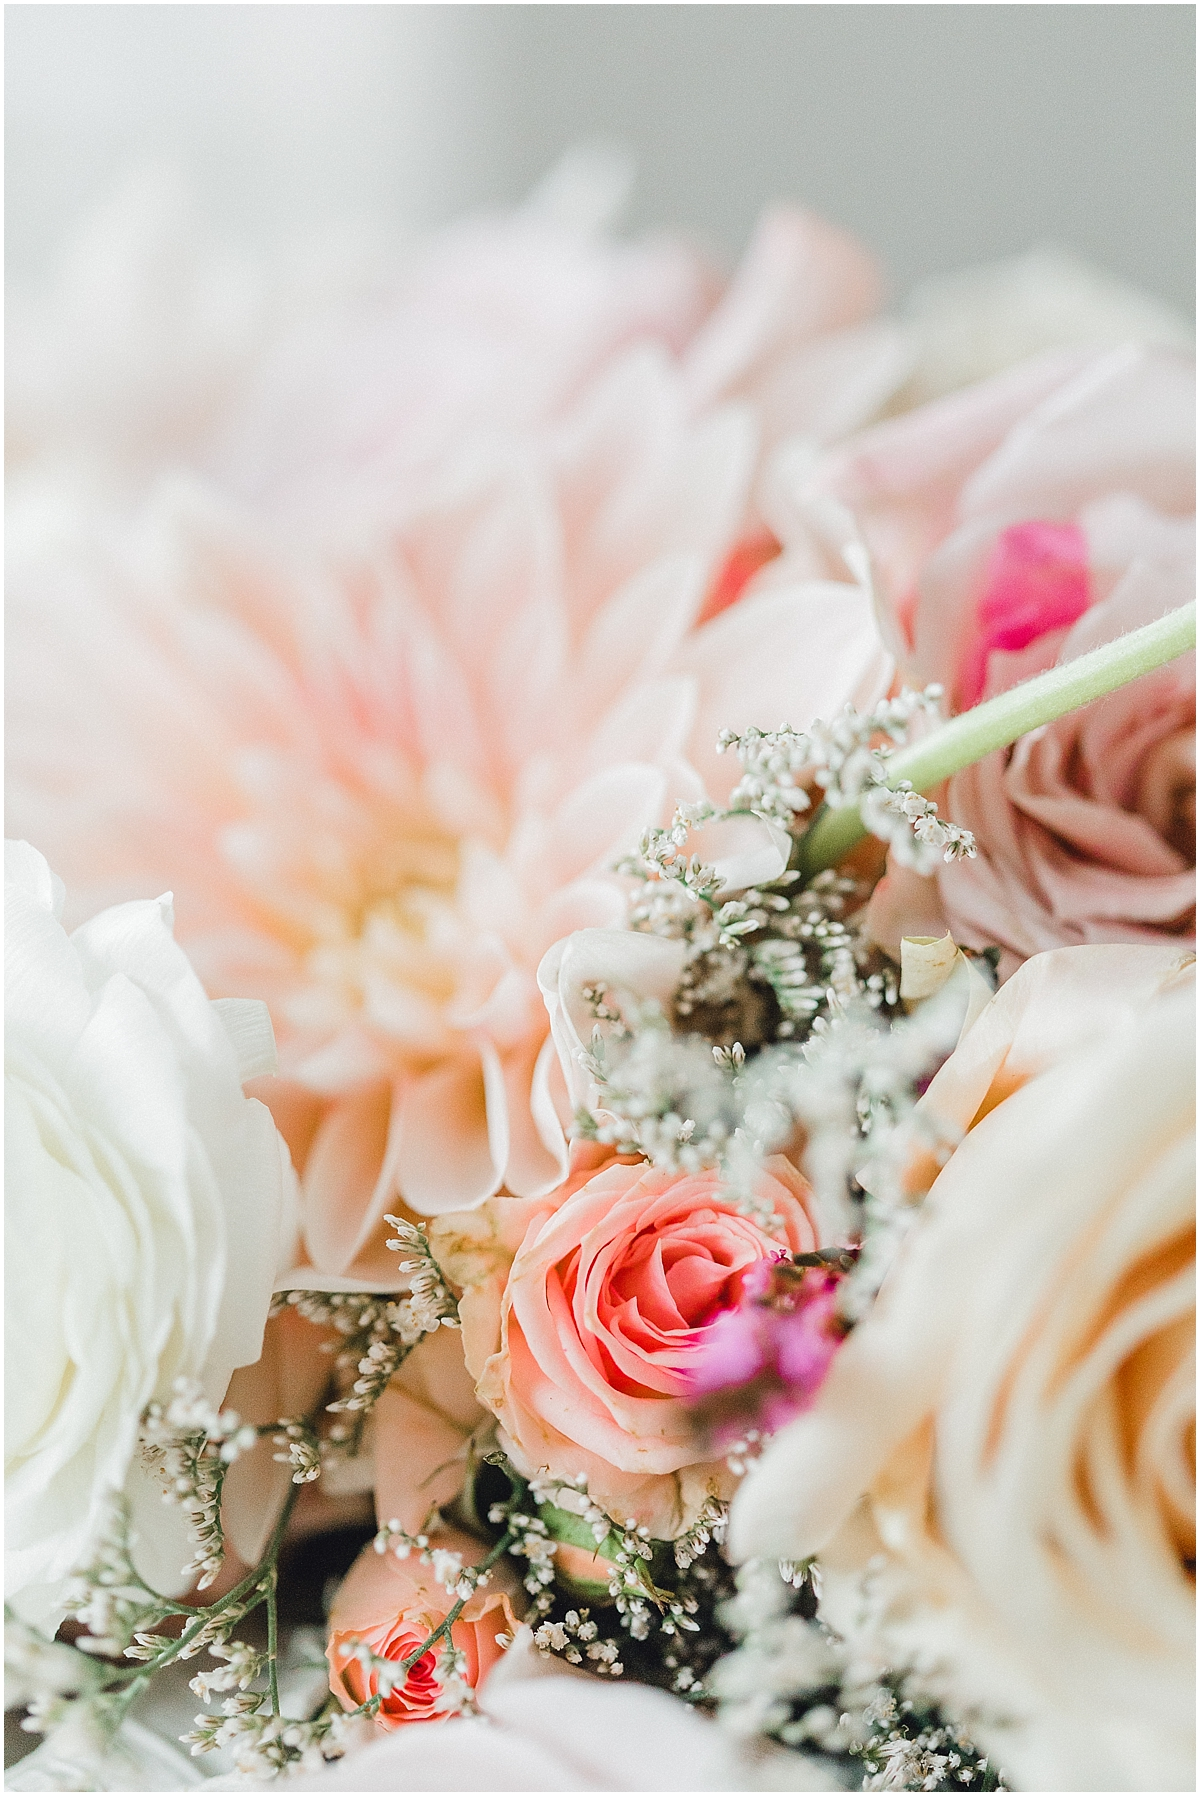 Beautiful mauve wedding in the Pacific Northwest, Emma Rose Company Light and Airy Wedding Photographer Seattle, Washington, Kindred Presets, Wedding Design Details Purple and Blush_0008.jpg